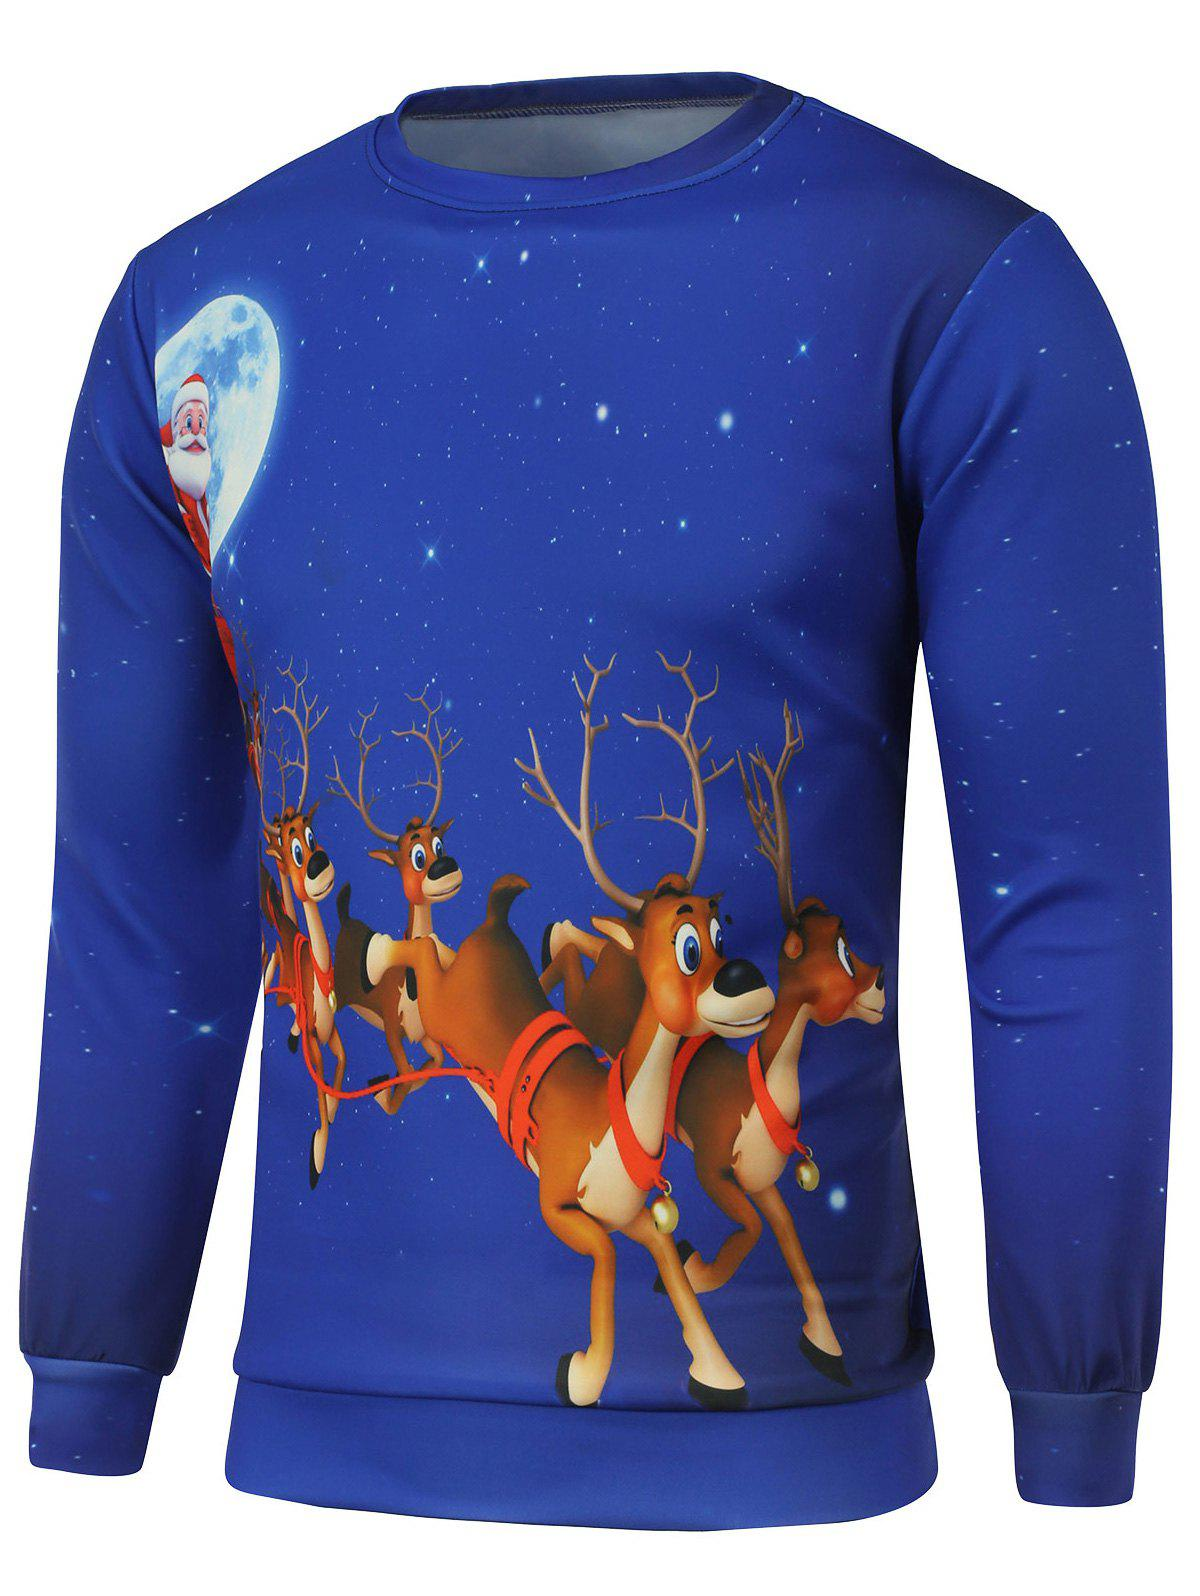 Reindeer Printed Crew Neck Christmas SweatshirtMEN<br><br>Size: M; Color: BLUE; Material: Cotton,Polyester; Shirt Length: Regular; Sleeve Length: Full; Style: Casual; Weight: 0.550kg; Package Contents: 1 x Sweatshirt;